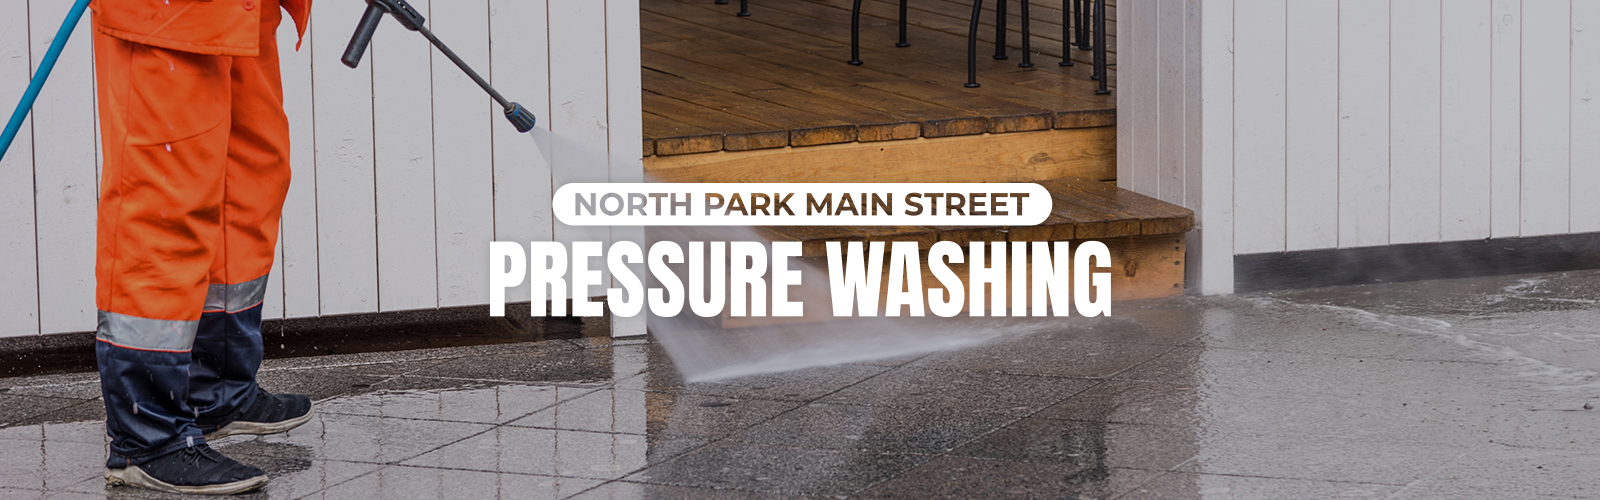 North Park Main Street Pressure Washing